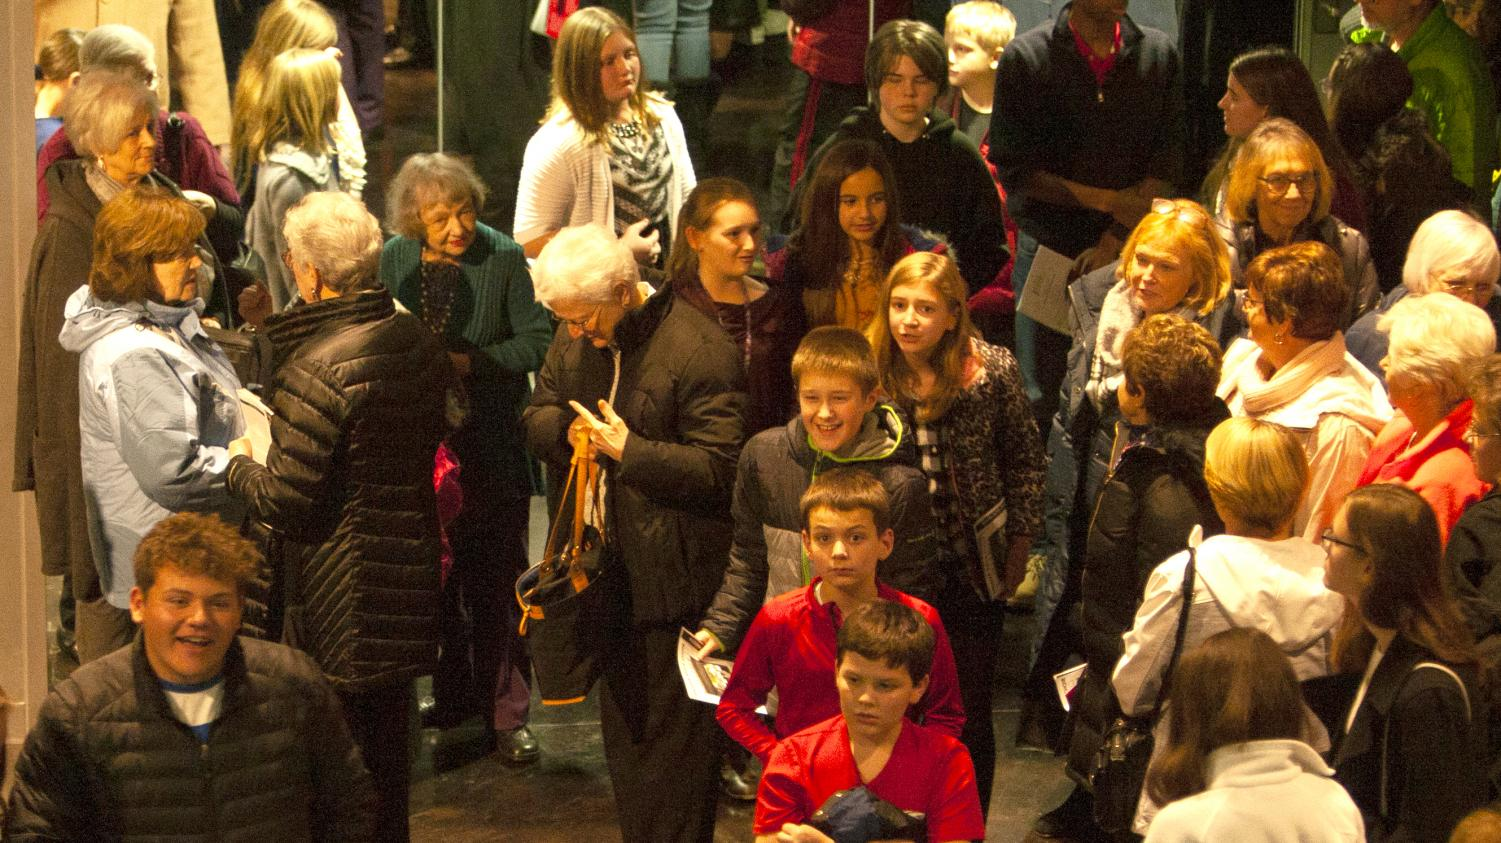 Audience members leave the Dvorak Concert Hall after a concert by the Vienna Boys Choir on Nov. 14. The concert began at 7:30 p.m. and general admission was $20.